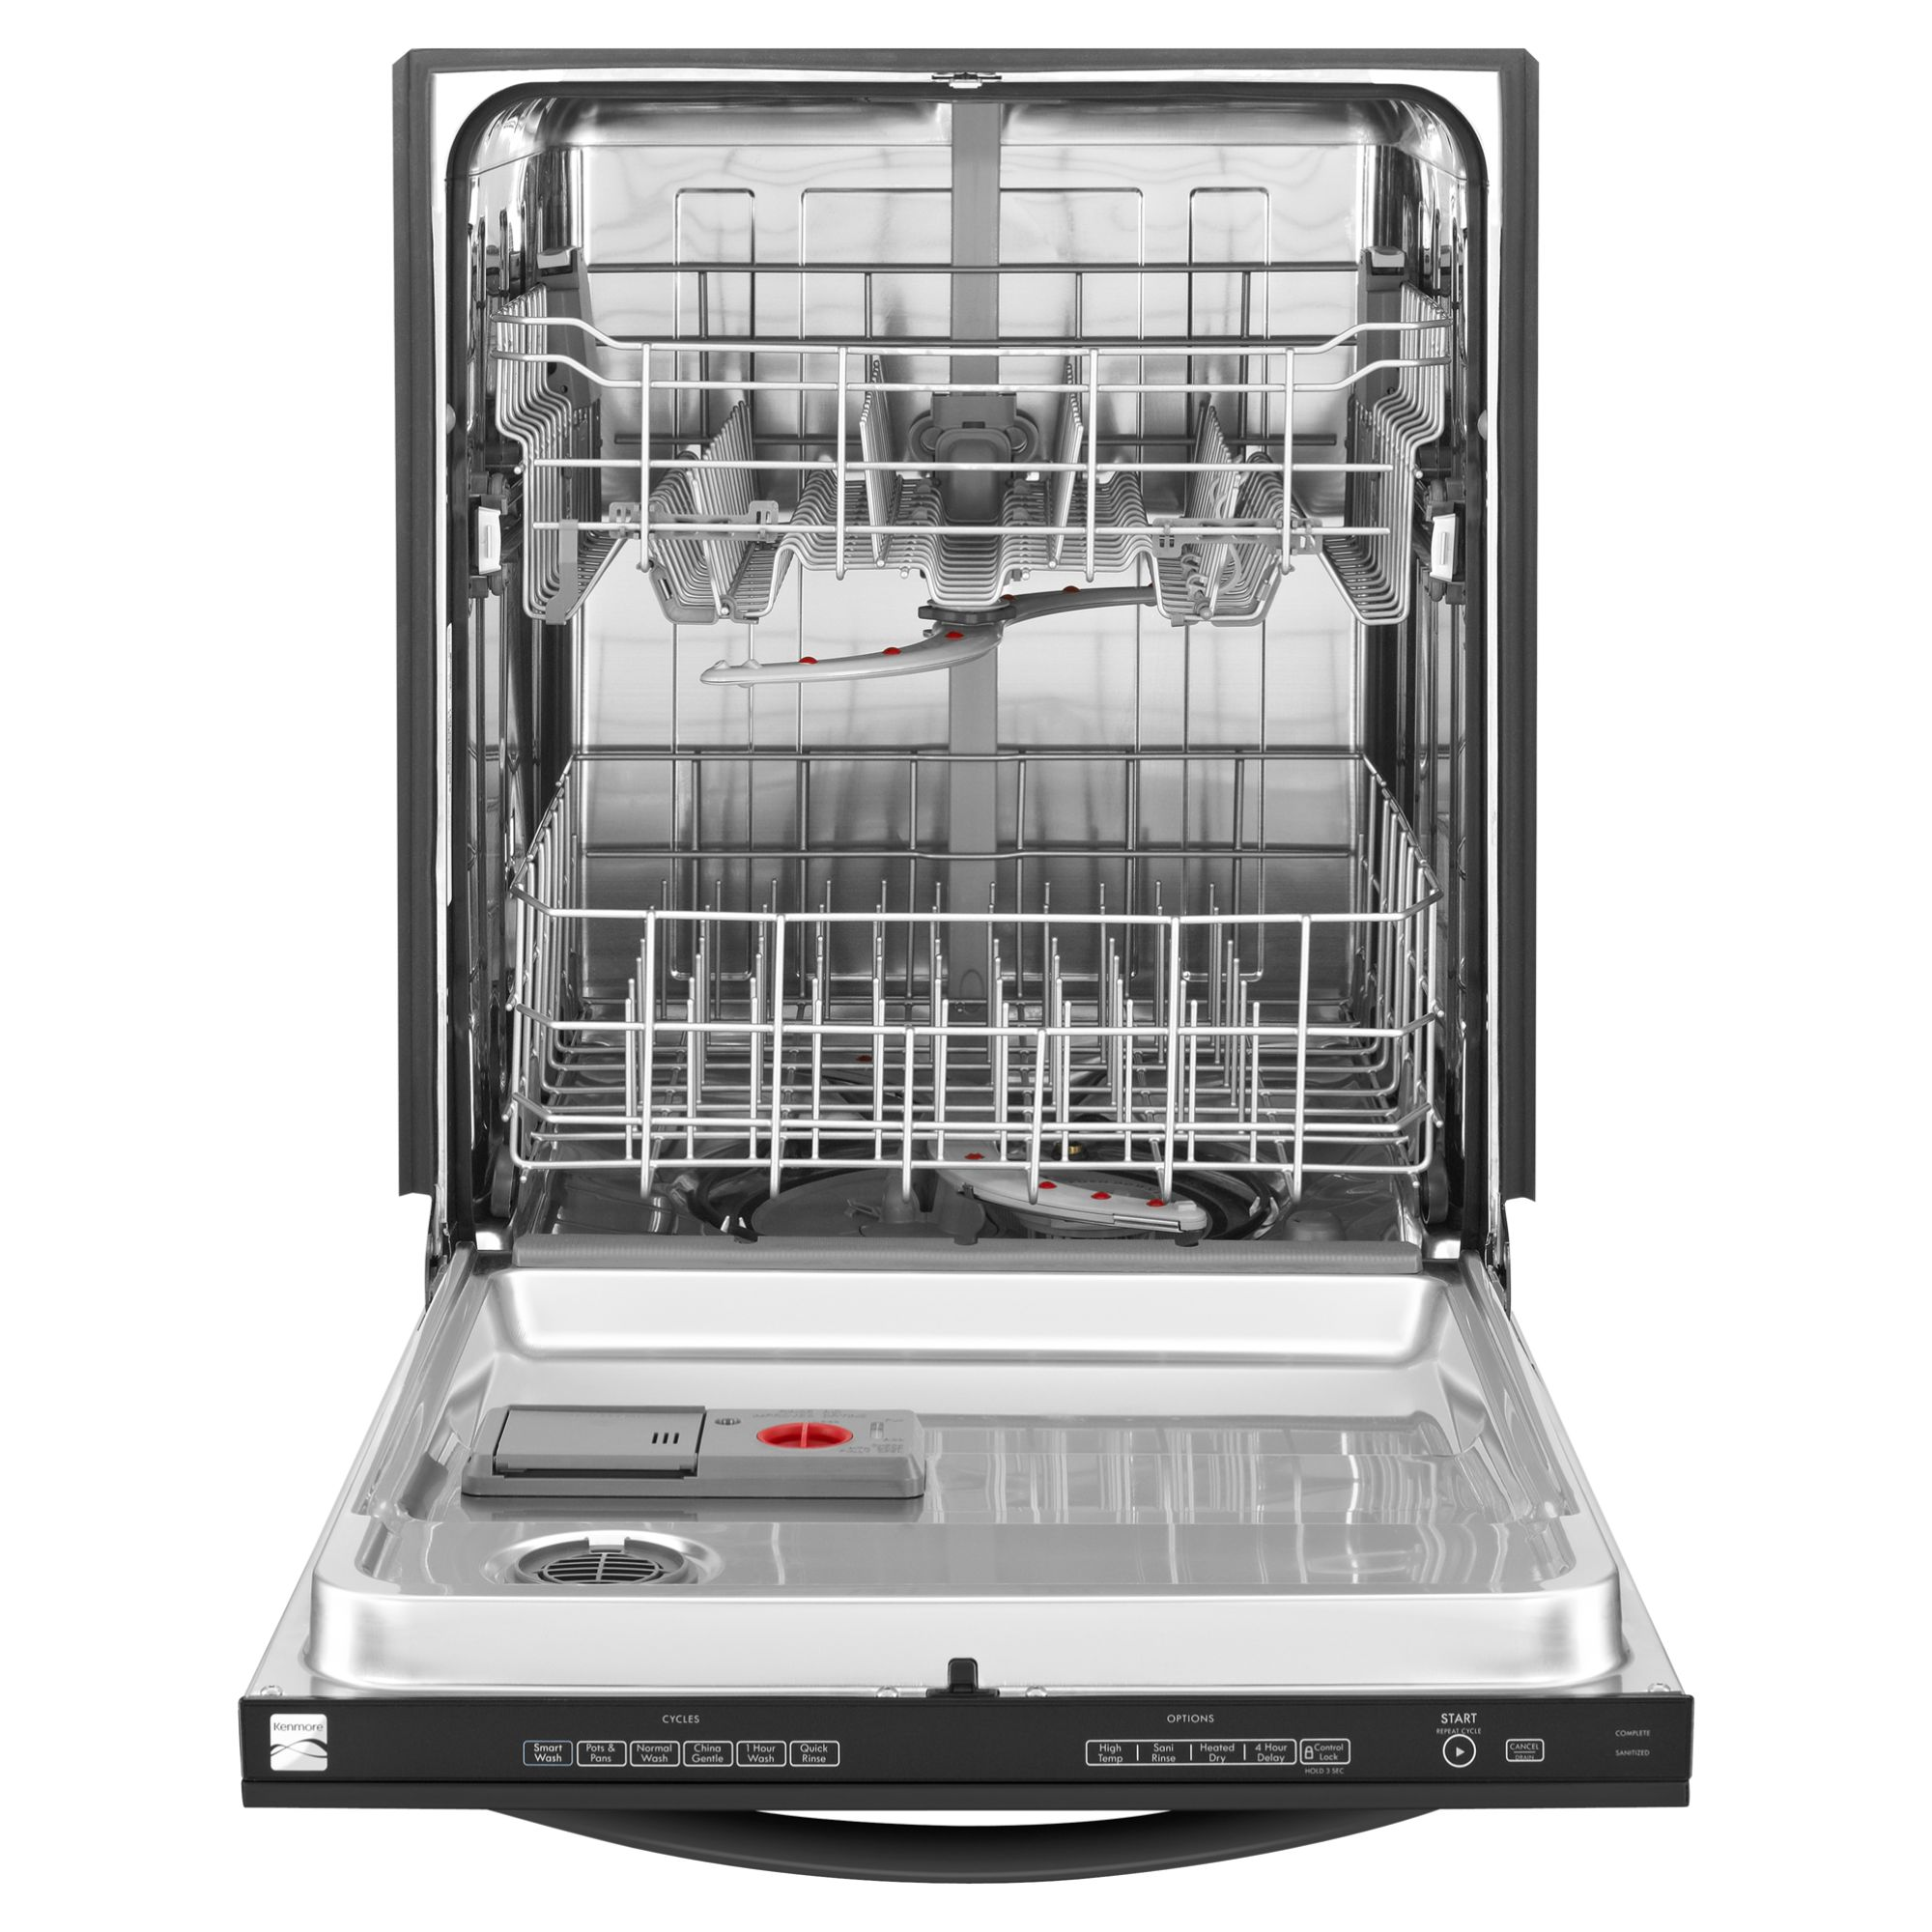 5722 For Sale 18 Apt Size Portable Dishwasher together with Kenmore Elite Refrigerator Parts 106 furthermore Kenmore Ultra Wash Dishwasher1 besides Tie Wire Twister likewise 110906318892. on kenmore dishwasher use